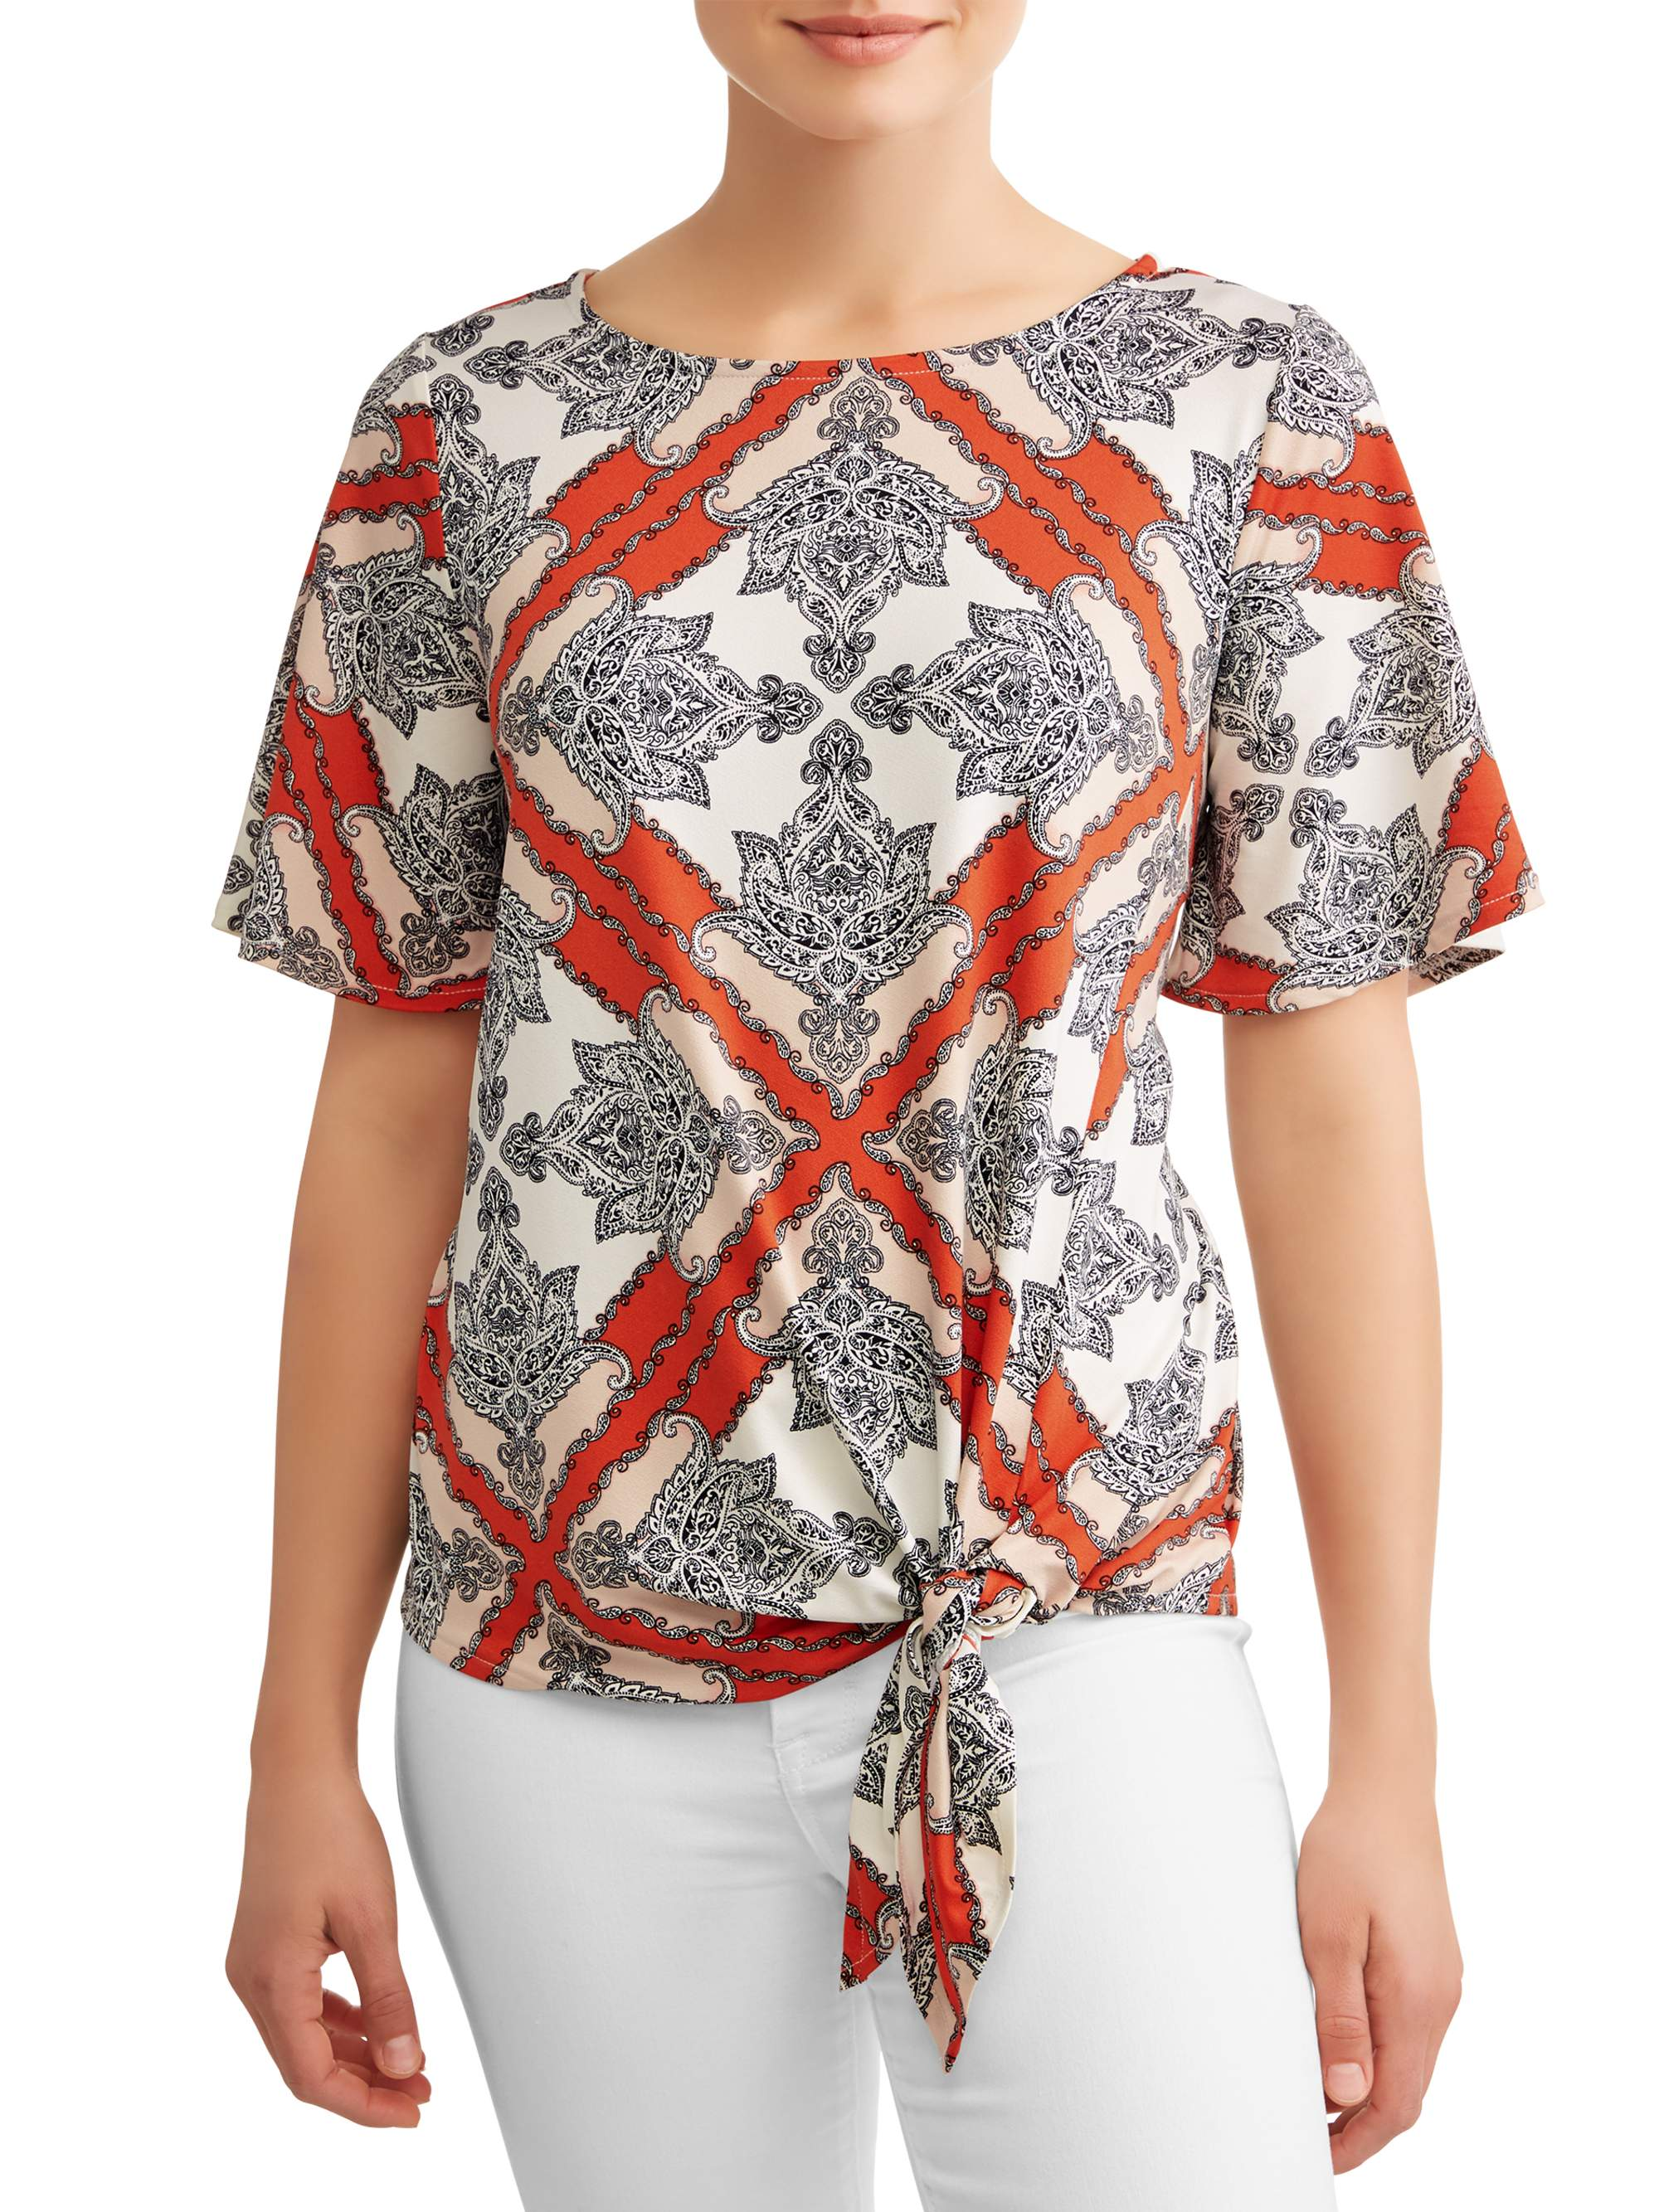 Women's Tie Front Printed Short Sleeve Top